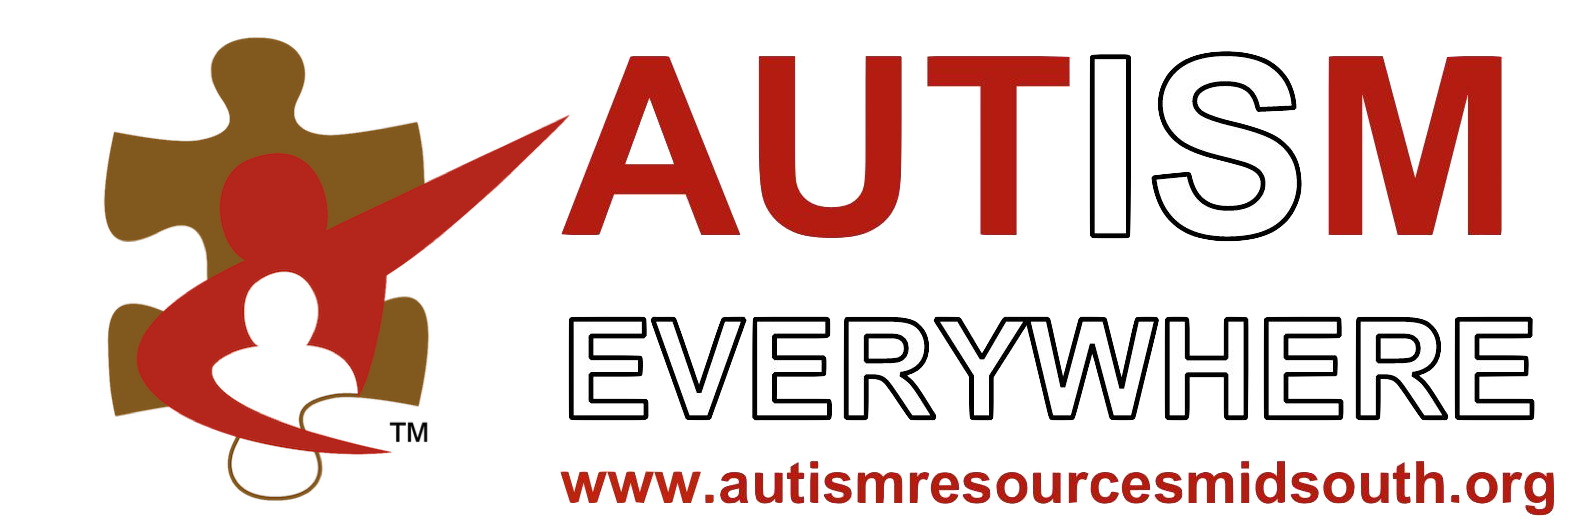 Autism is Everywhere decal